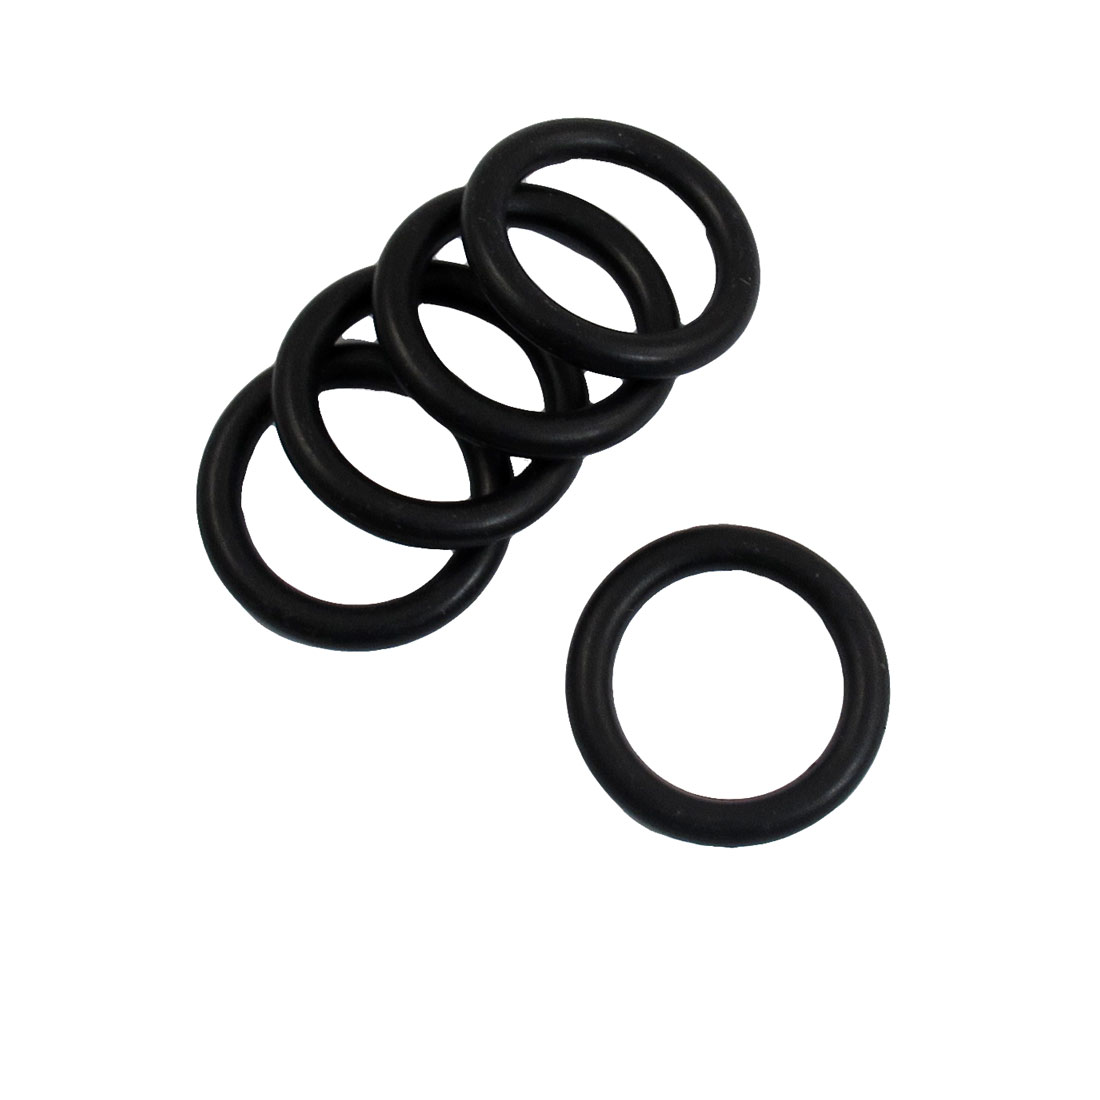 5 Pcs 35mm x 5mm Black Rubber Sealing Oil Filter O Rings Gaskets